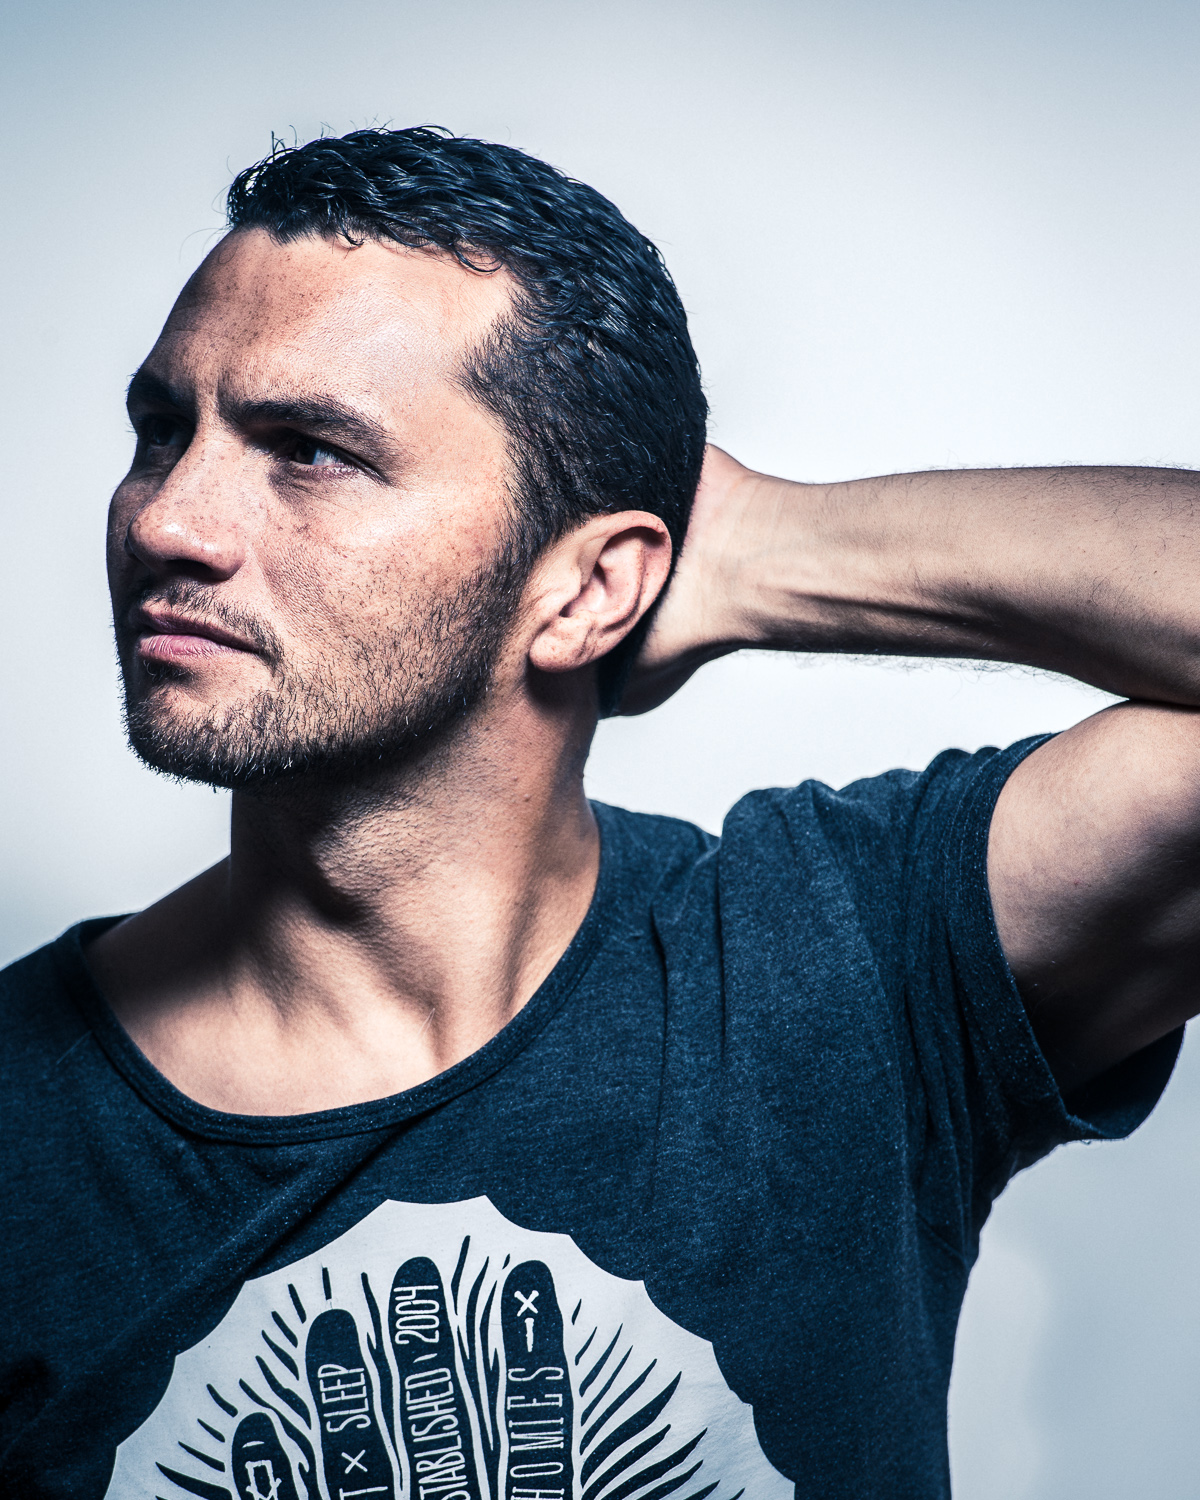 Jason Kerrison_001_photo_©2013 Steve Dykes.jpg